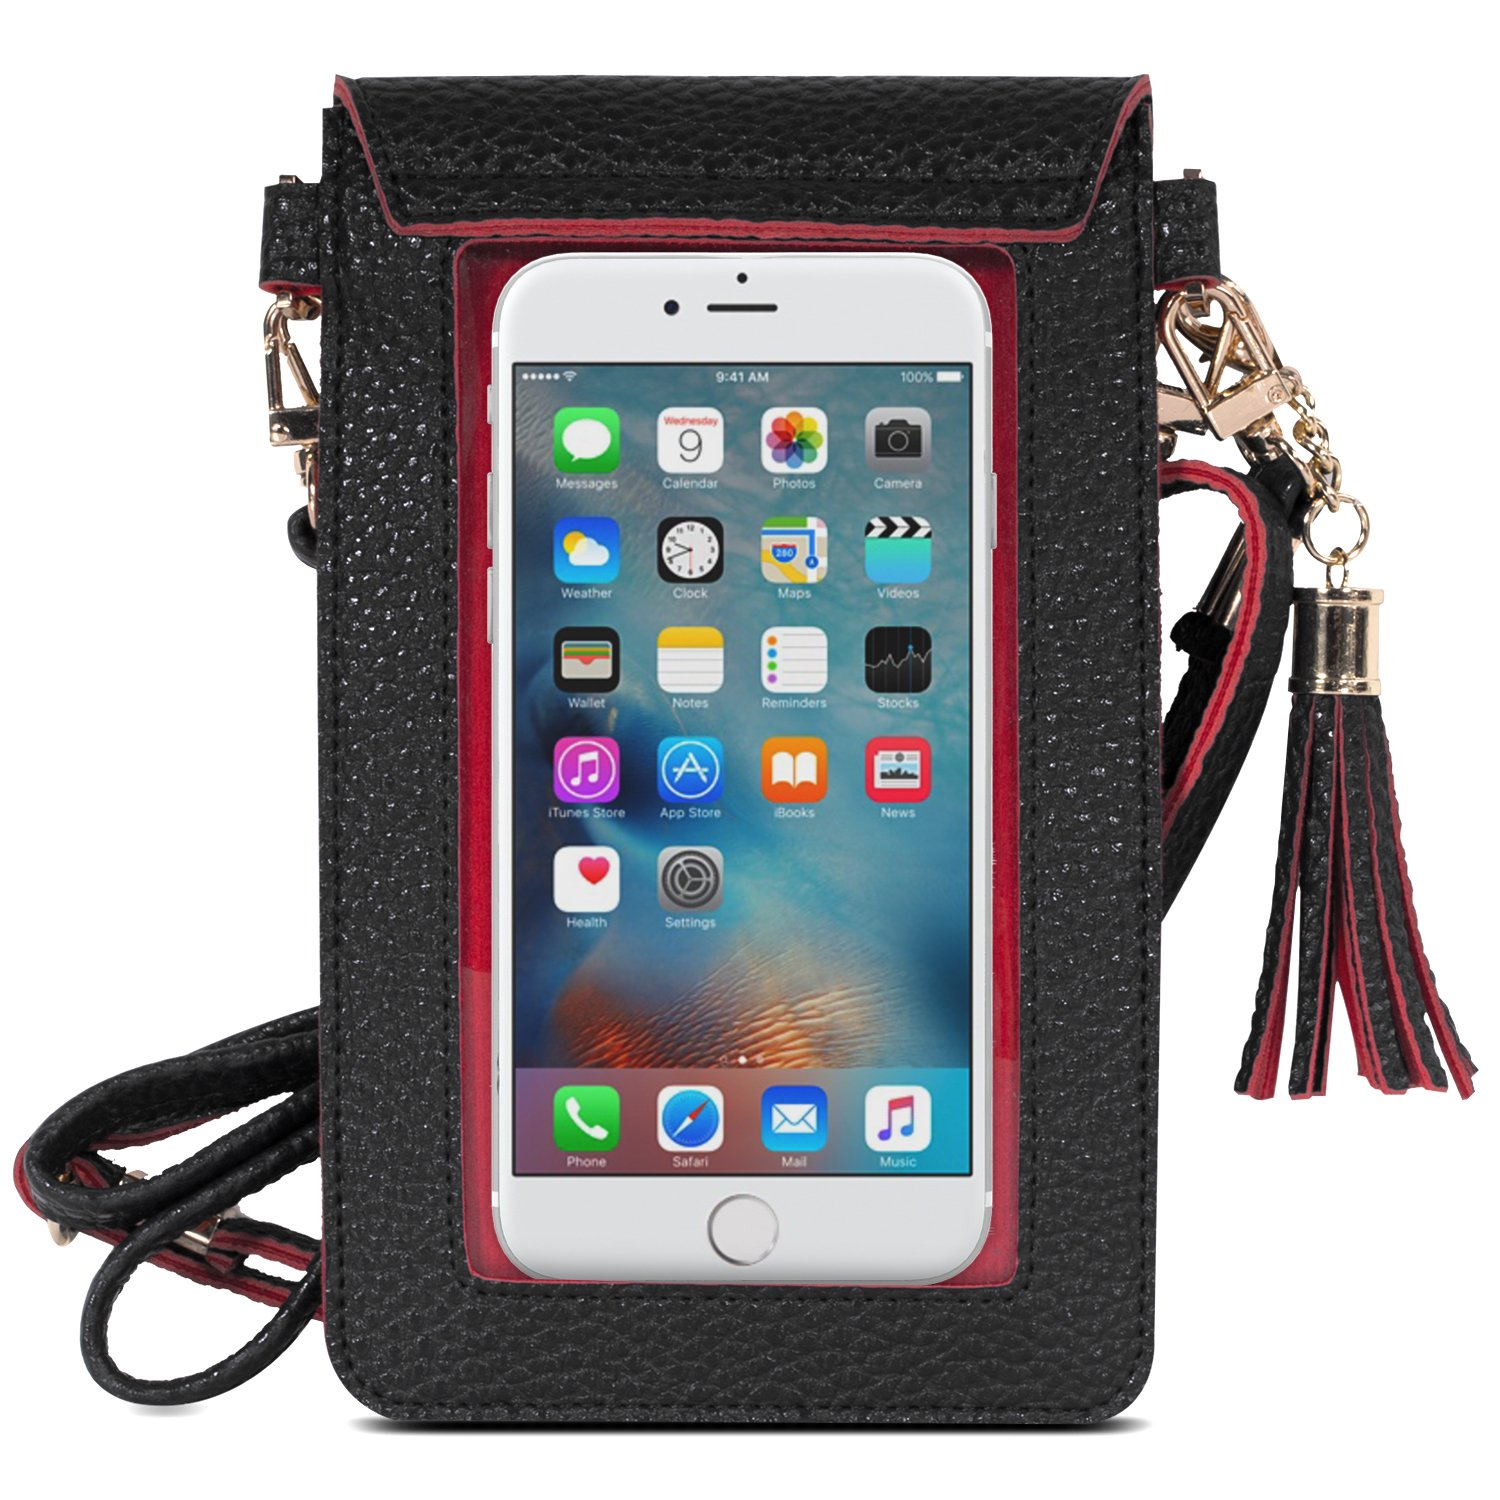 MoKo Cell Phone Bag, PU Leather Crossbody Bag Mini Phone Pouch with Shoulder Strap Fit with iPhone X, 8, 8 Plus, 7 Plus, 6S Plus, 6 Plus, 7, 6S, 6, 5S, 5C, Samsung S8, S7 Edge, S6, J3, J7, Black+Red